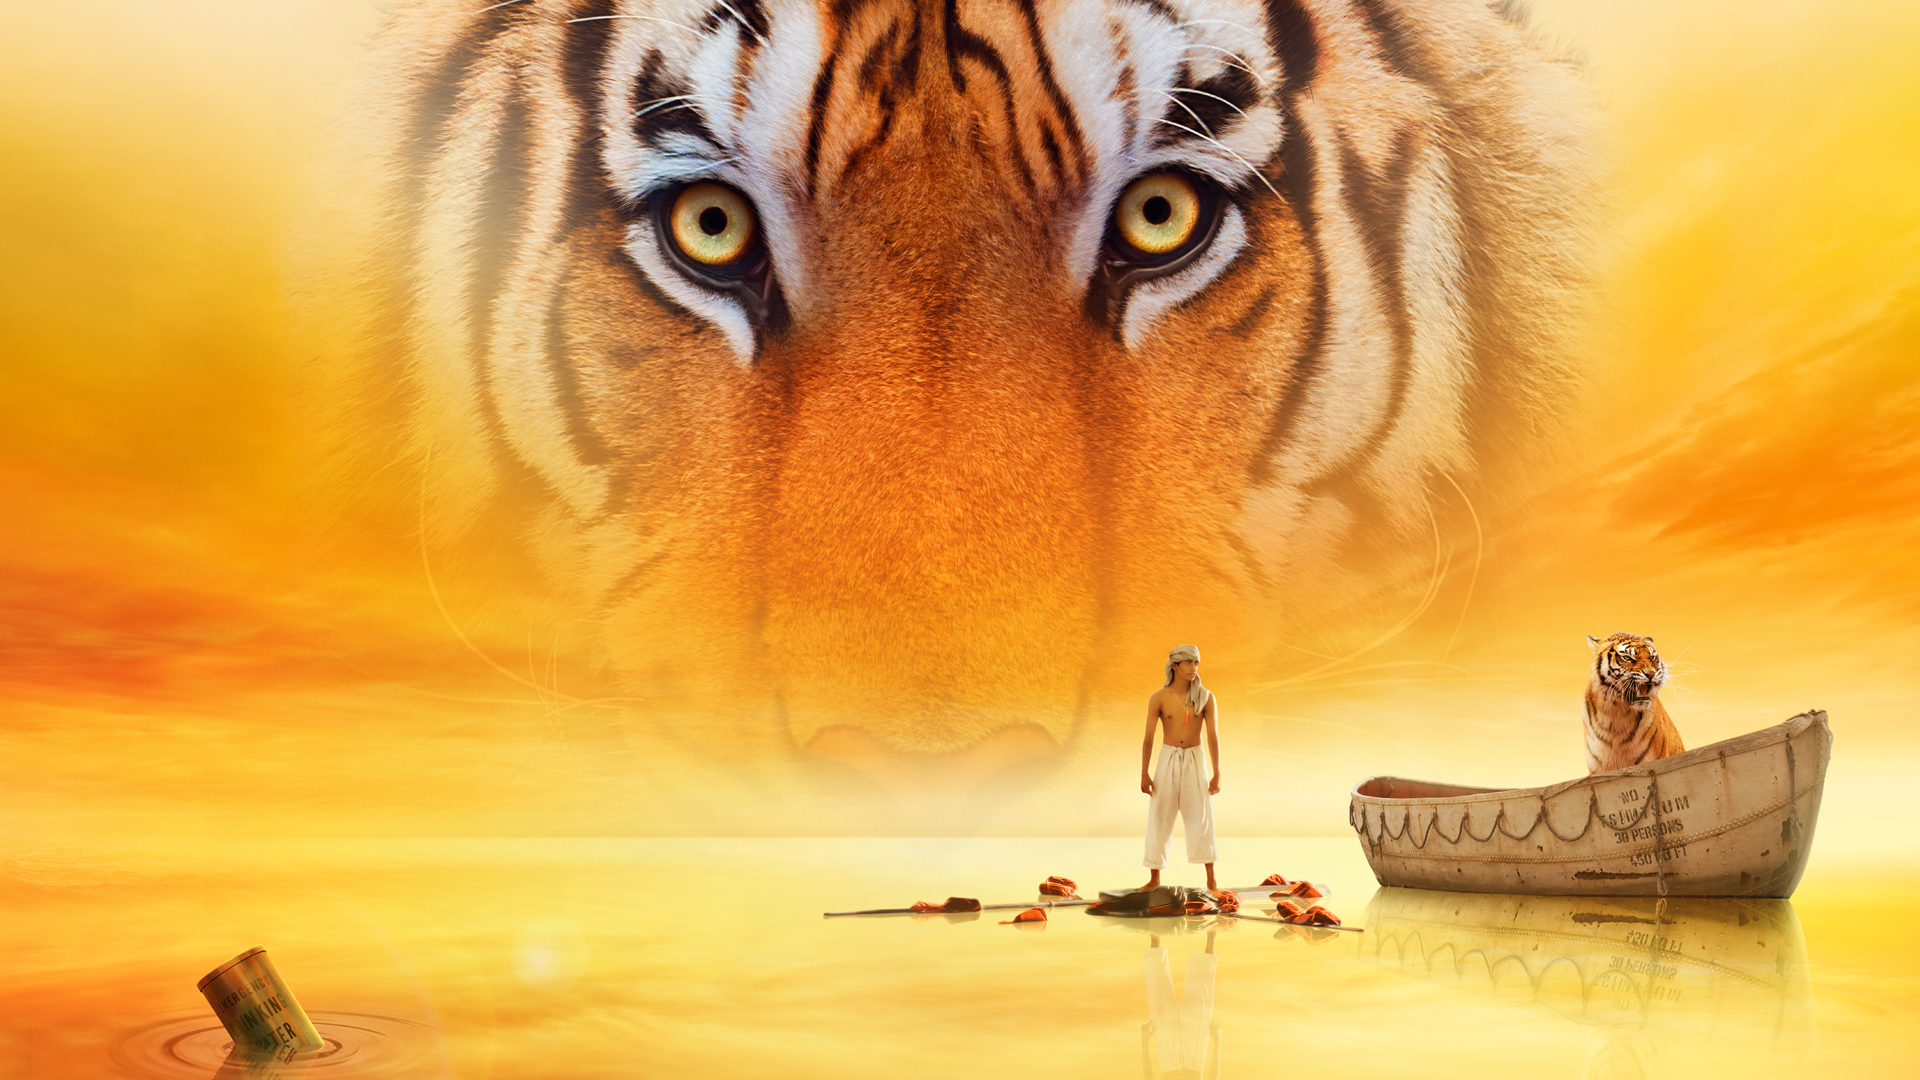 a review of the movie life of pi Life of pi is a fantasy adventure novel by yann martel, which was published in 2001, but earlier this year the movie called life of pi was released, and so far it has been getting really great reviews the movie is about a 16 year old boy named pi, whose father decides to move to canada.